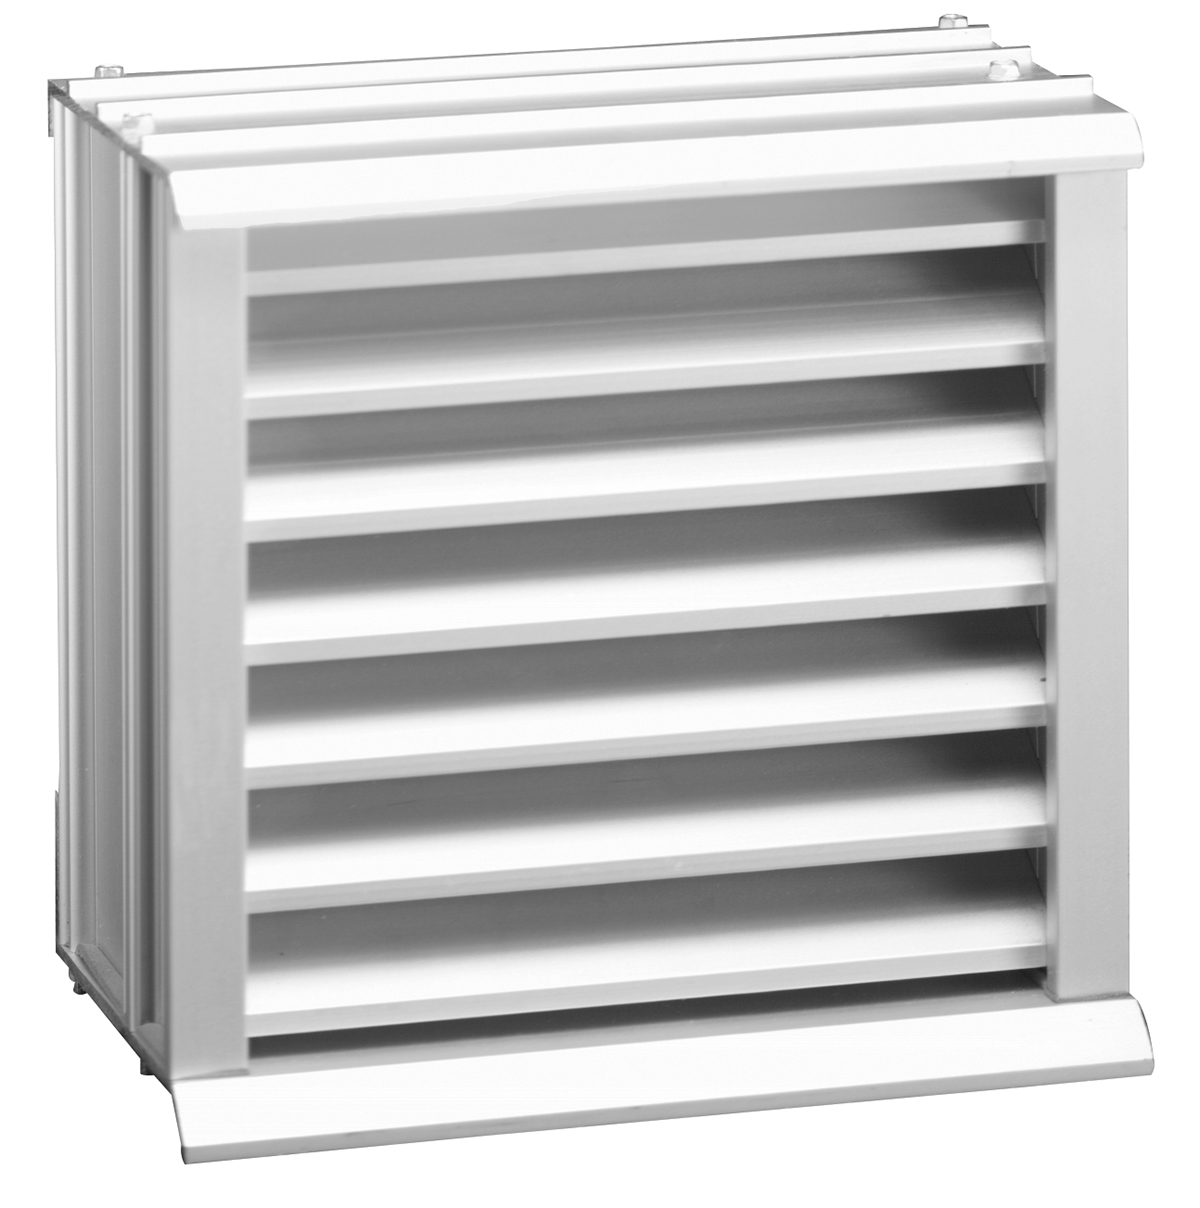 #3E3E3E BV Aluminum Brick Vent Hart & Cooley Recommended 7067 Wall Louvers Vents pics with 1200x1208 px on helpvideos.info - Air Conditioners, Air Coolers and more